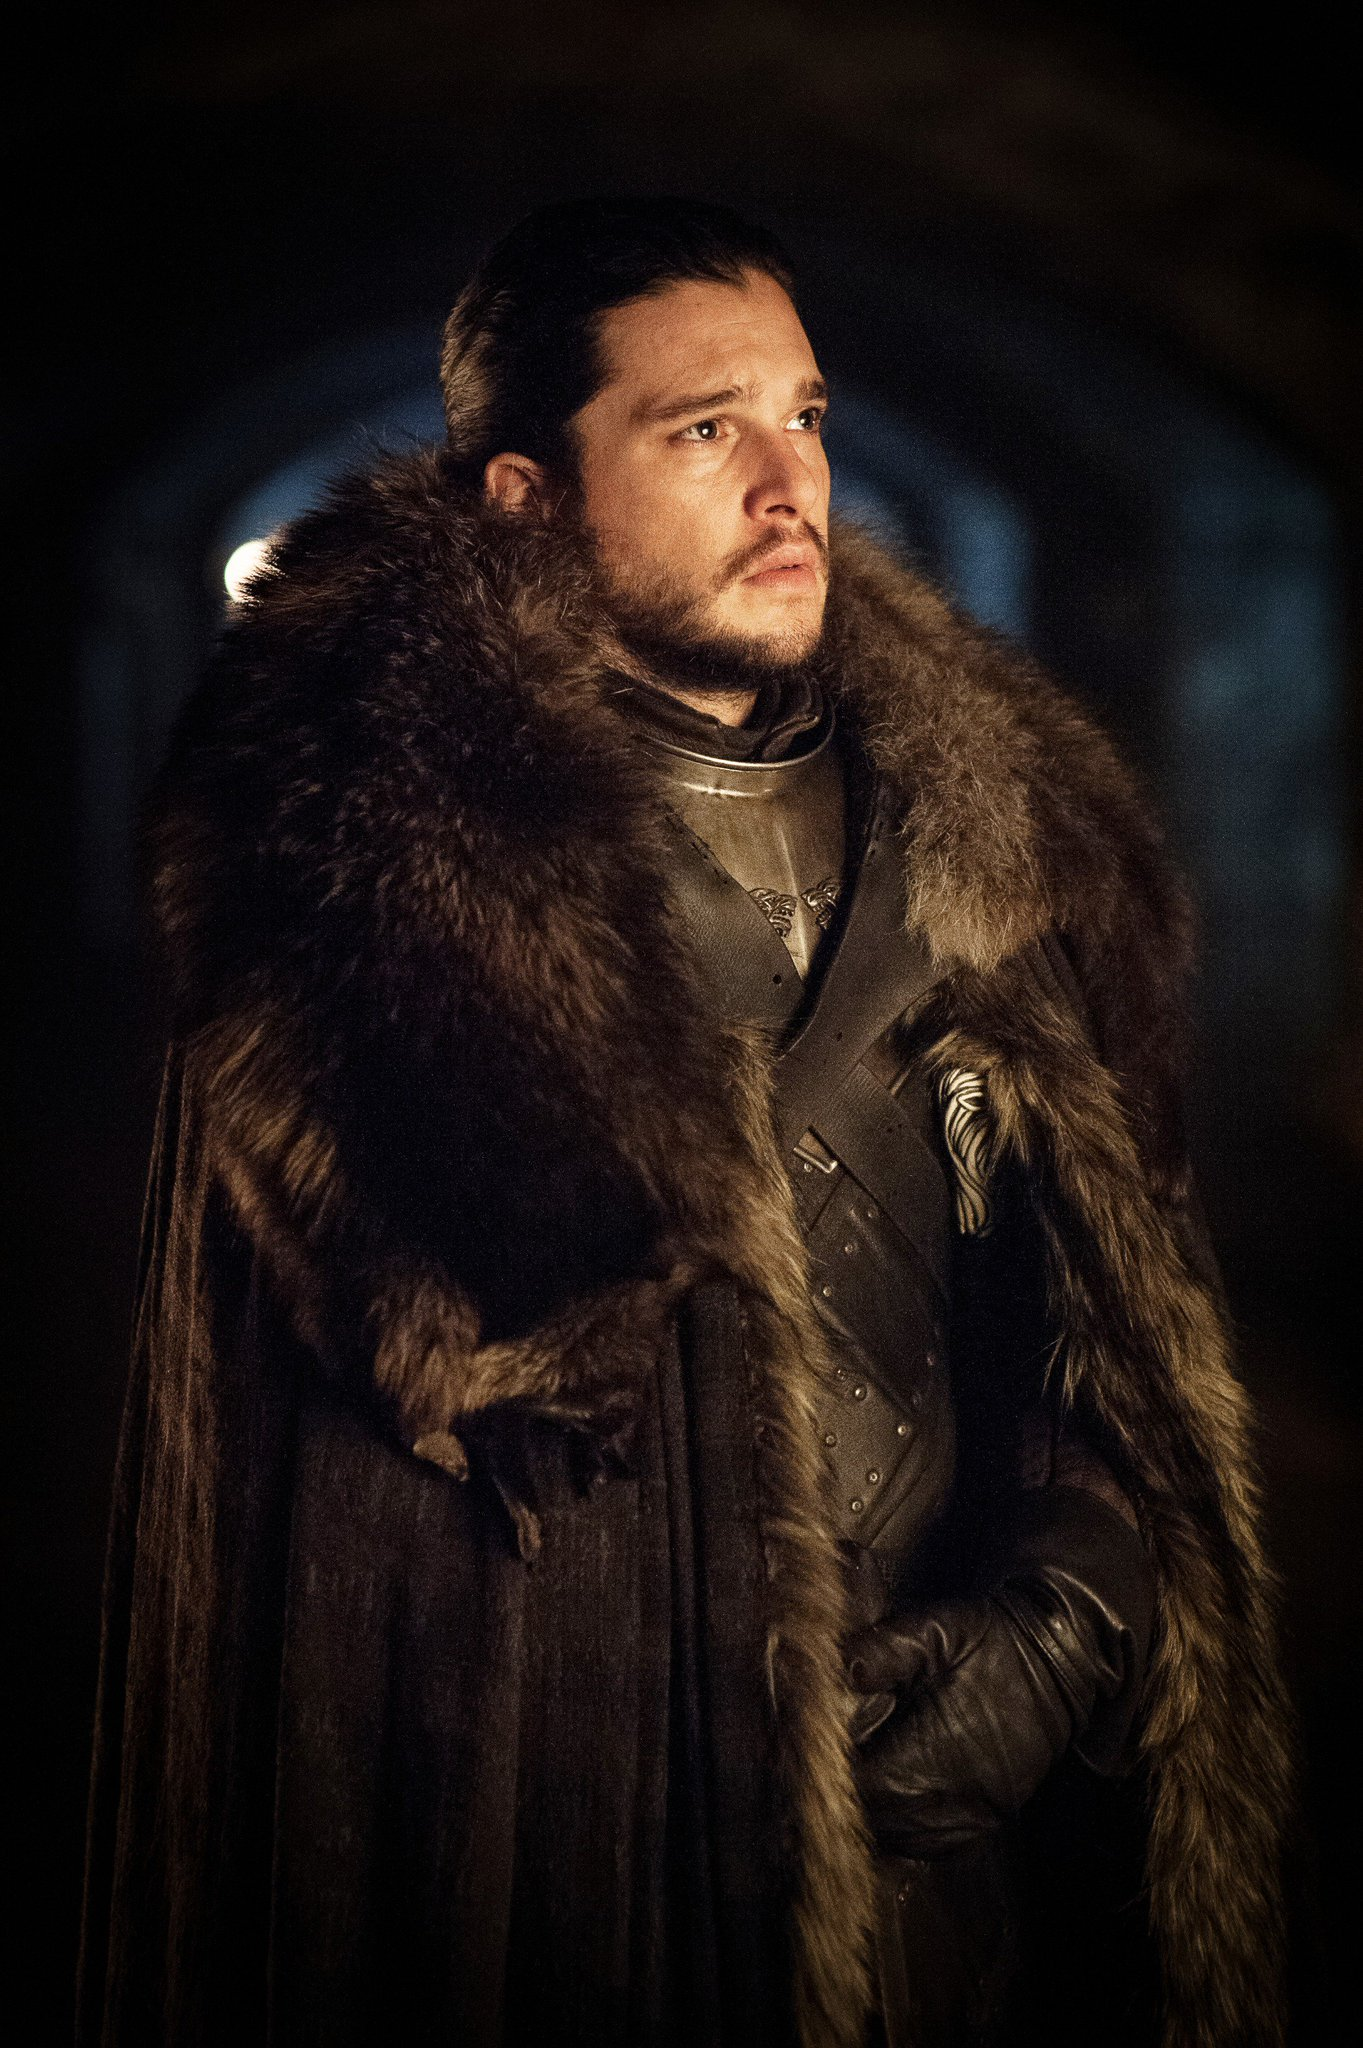 Kit Harington as Jon Snow. #GoTS7 #GameofThrones (Photo Helen: Sloan/HBO) https://t.co/UNQEOW2GCv